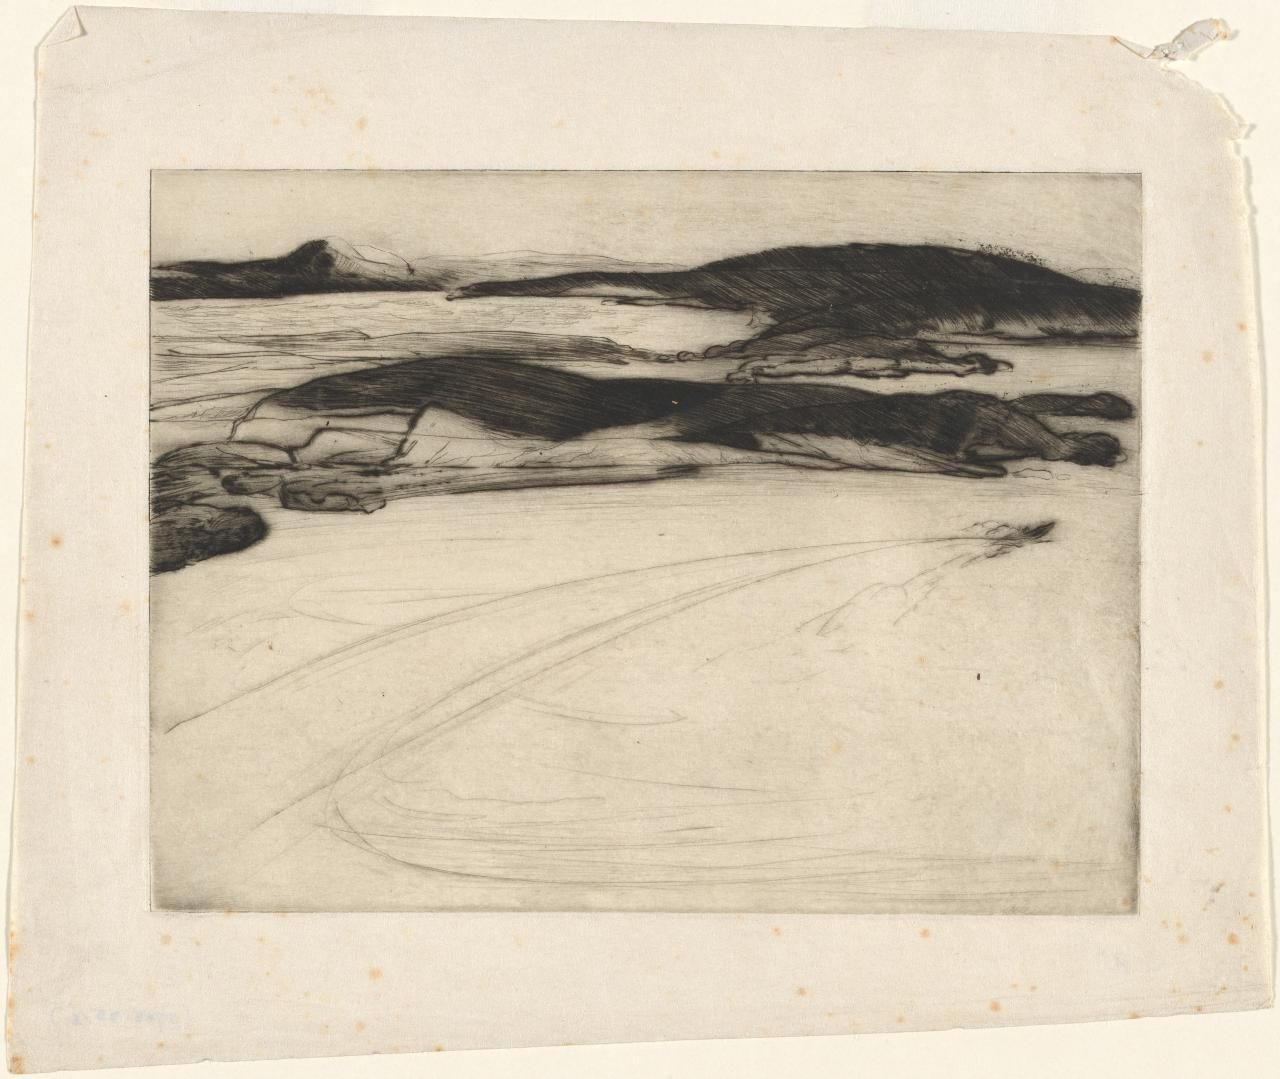 (Untitled) (Coastal landscape - inlets and peninsulas - speed-boat in foreground)